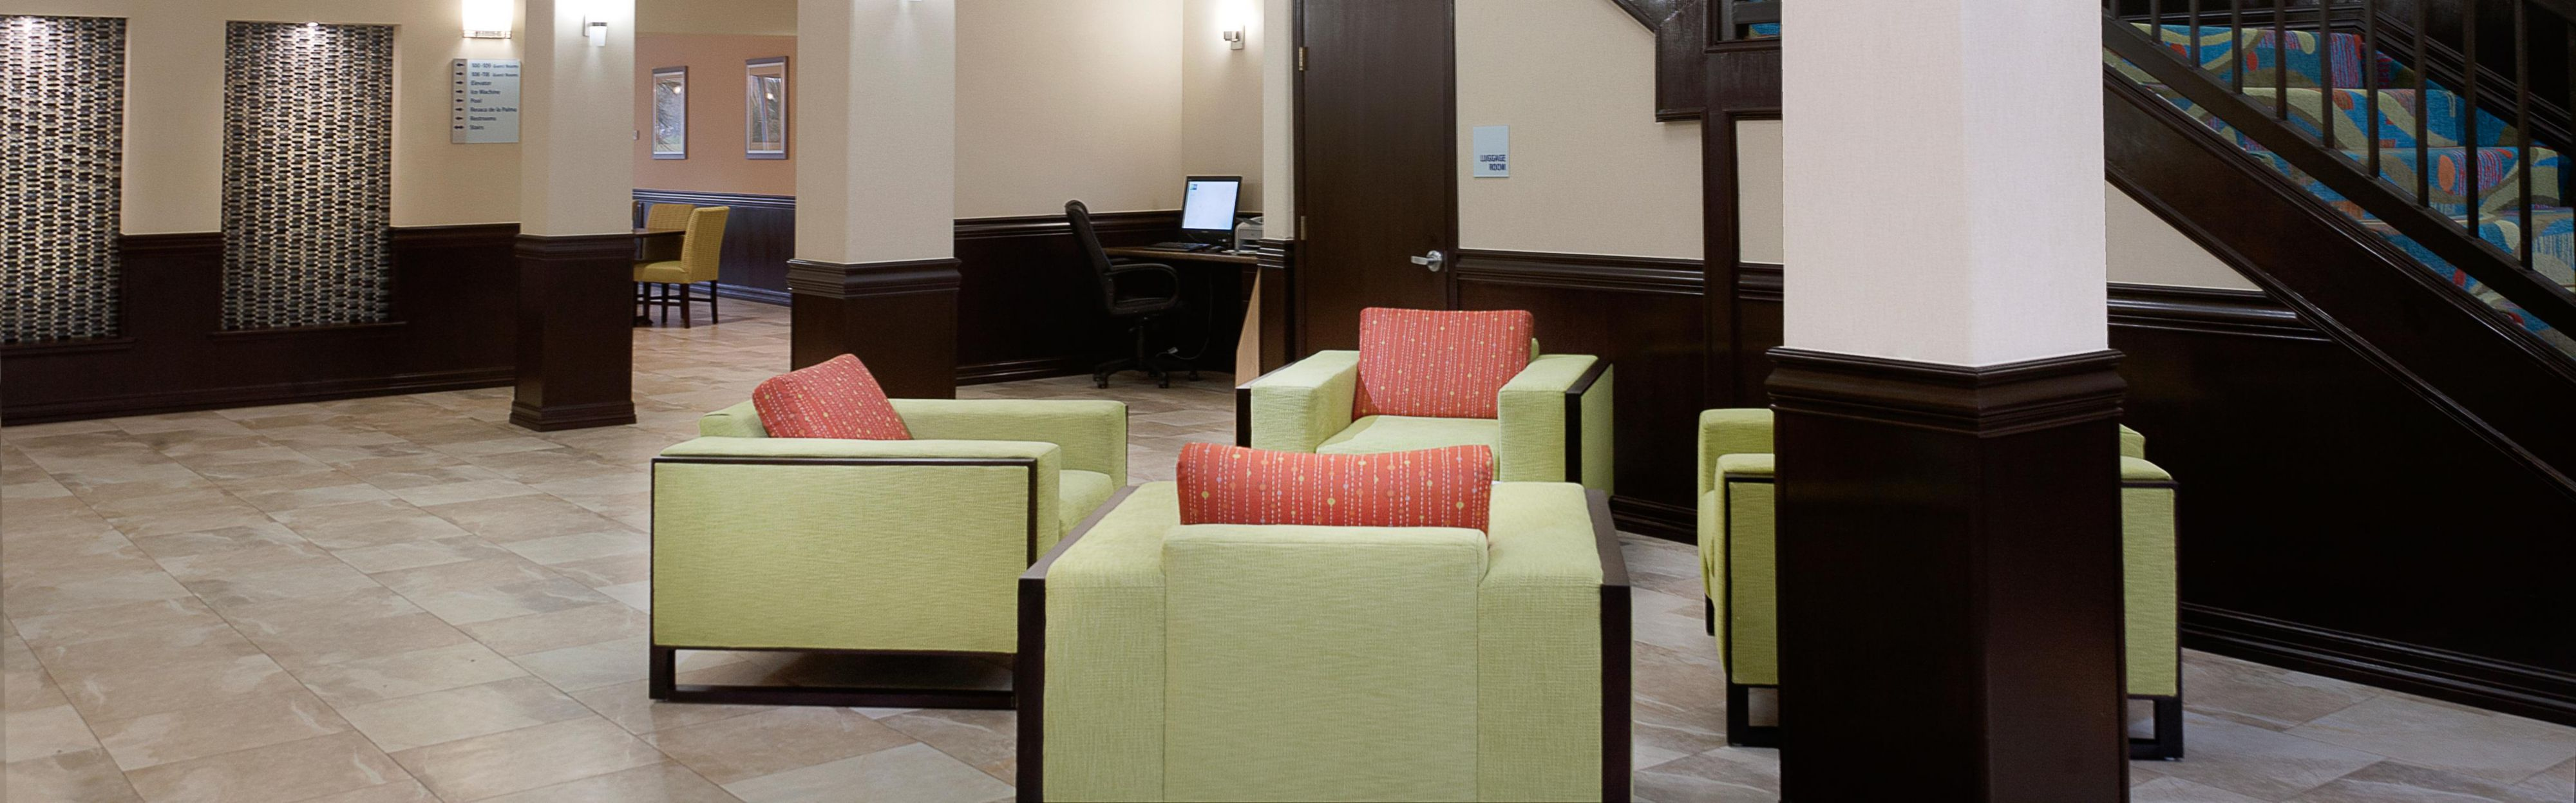 Holiday Inn Express & Suites Brownsville image 0